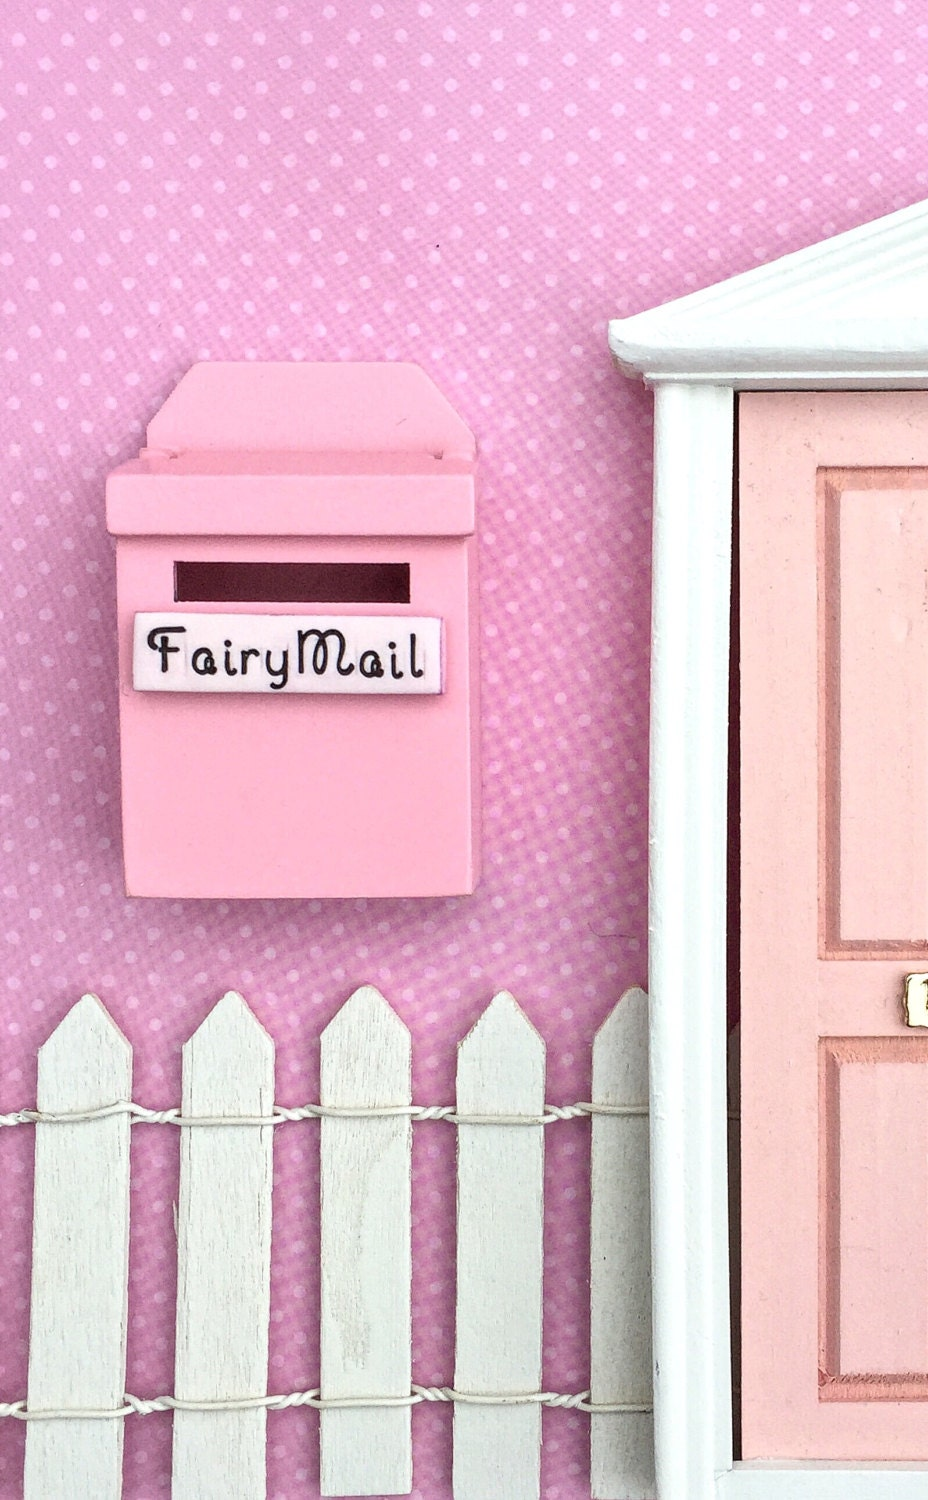 Fairy garden mailbox fairy garden accessories fairy mail for Fairy door kits canada